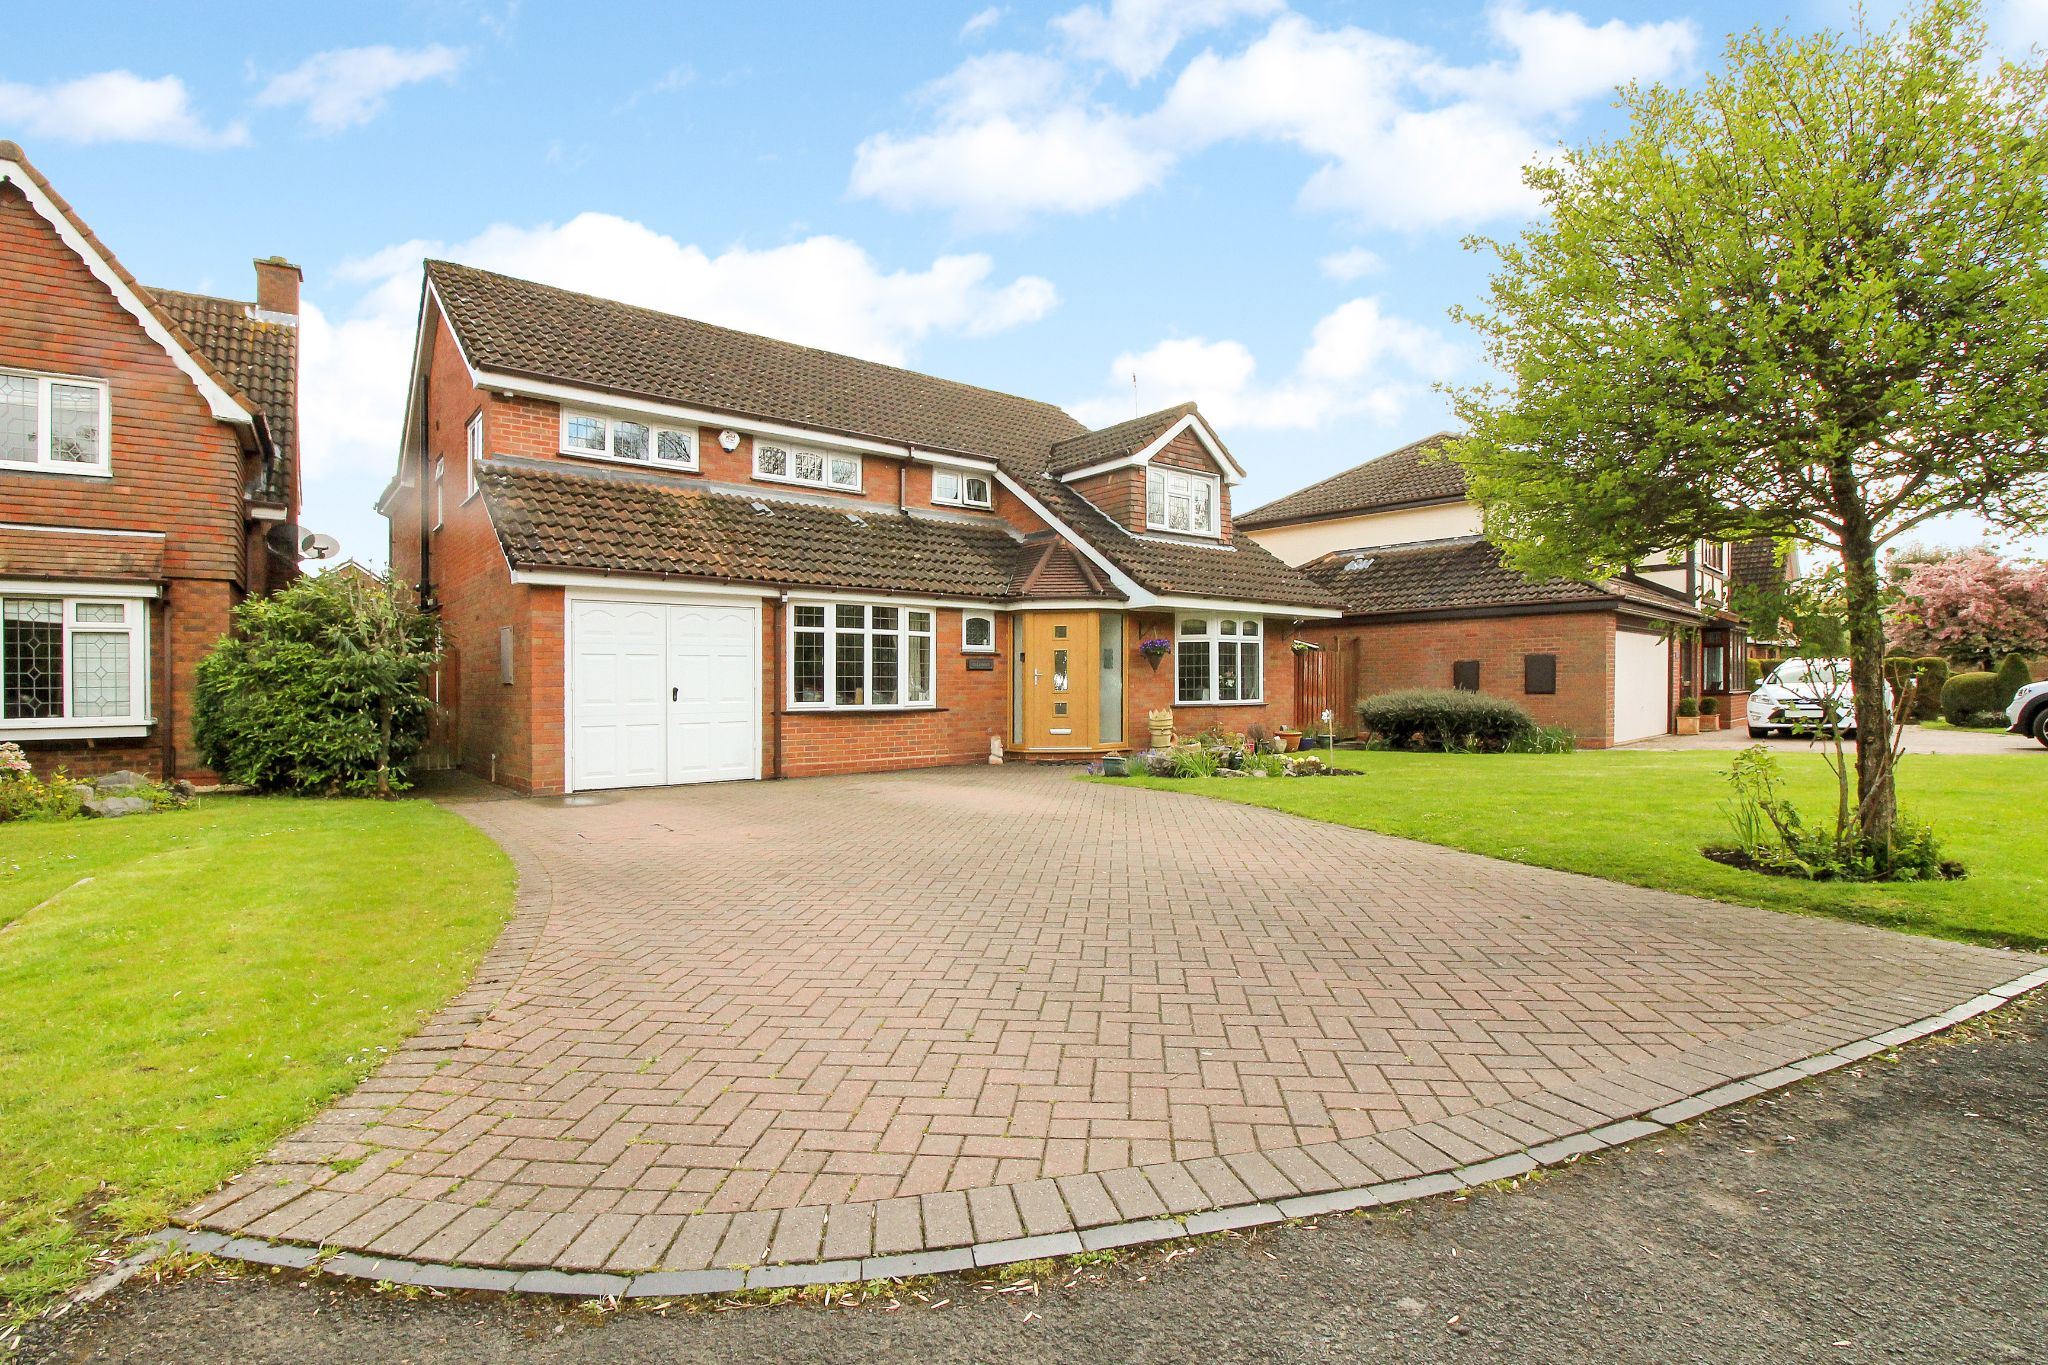 5 bedroom detached house SSTC in Solihull - Photograph 1.